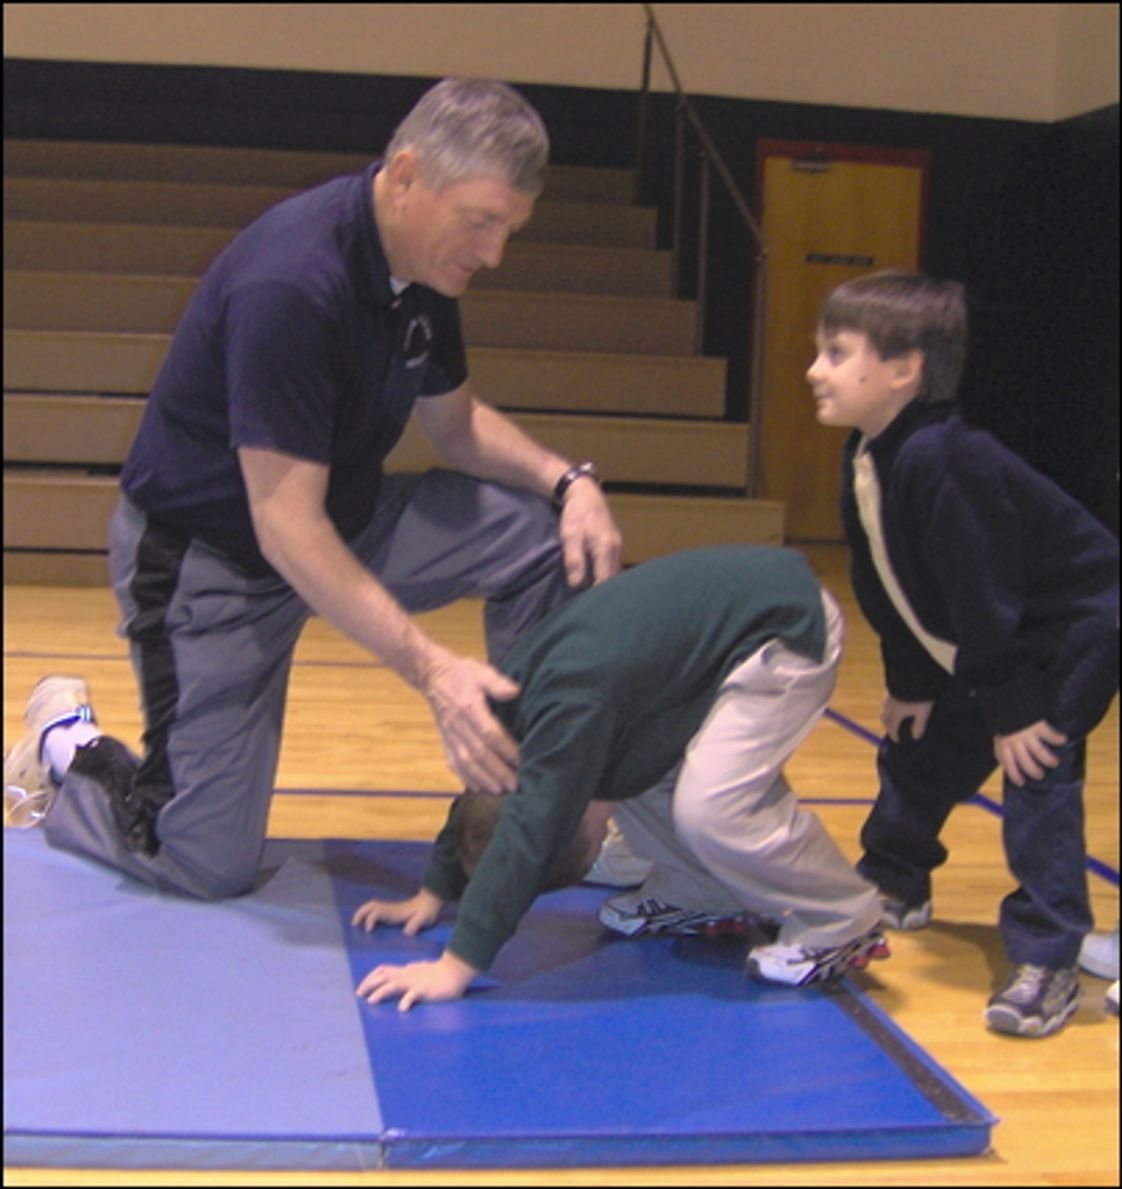 Heritage Christian School Photo - PE instruction for all